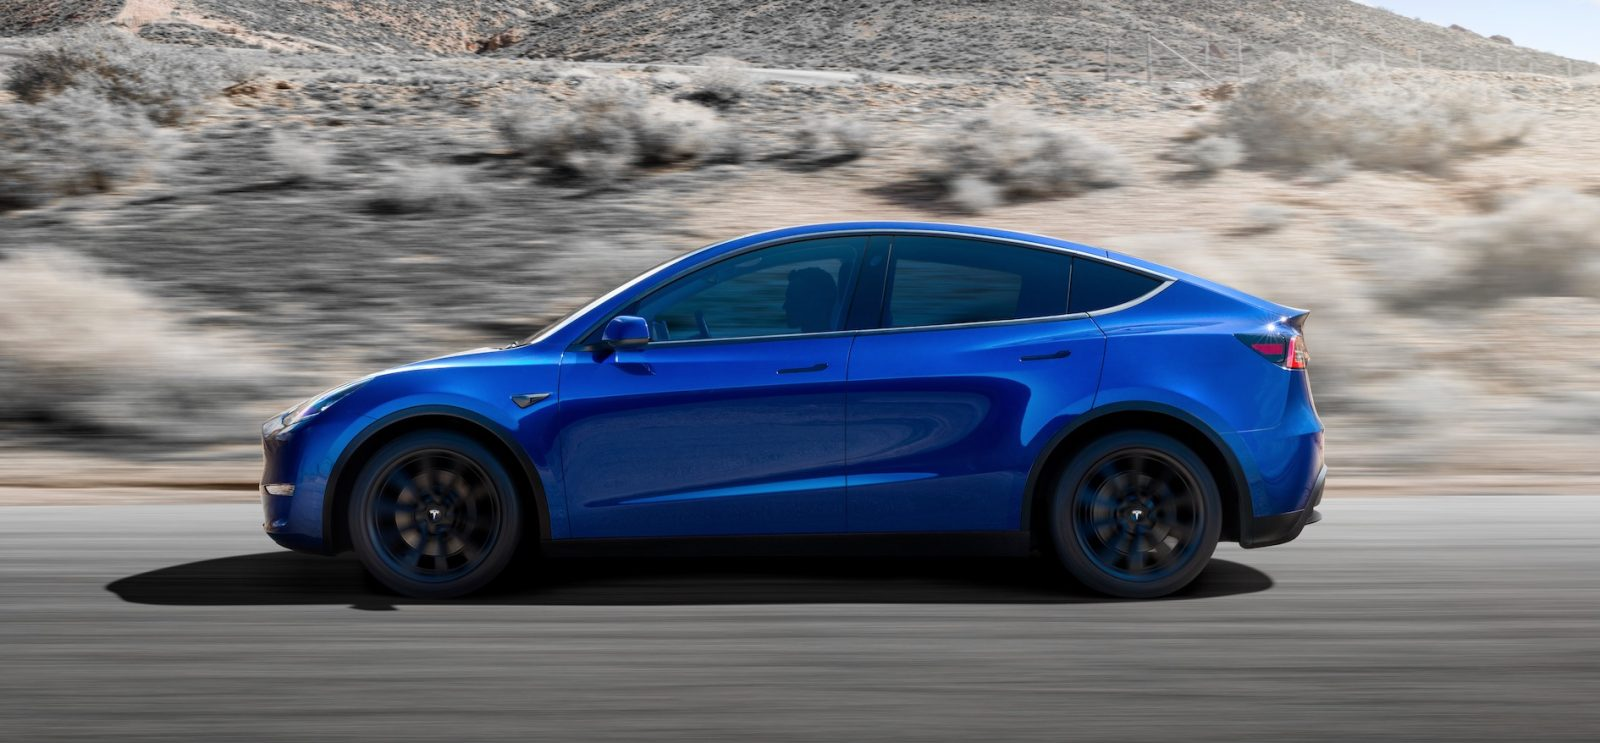 Tesla unveils Model Y electric SUV with 300 miles range and